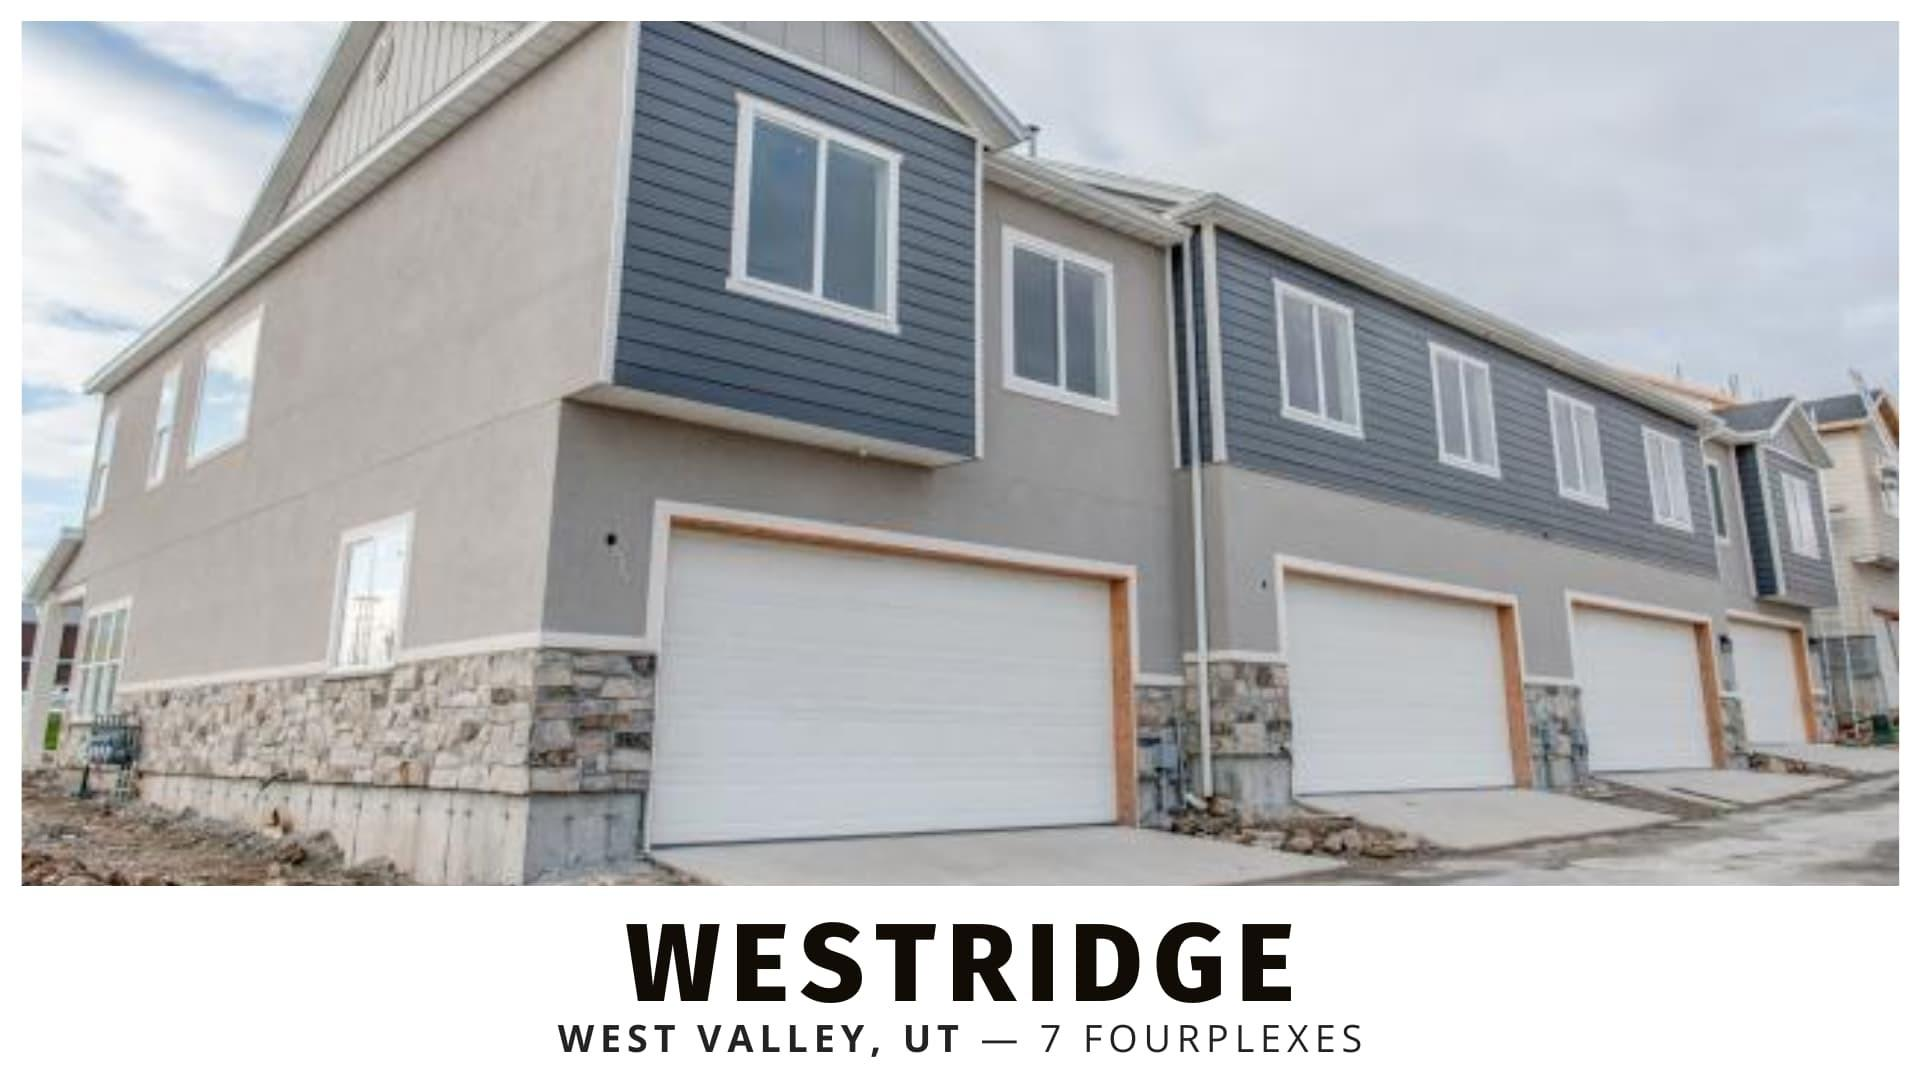 Westridge Fourplexes in West Valley, Utah